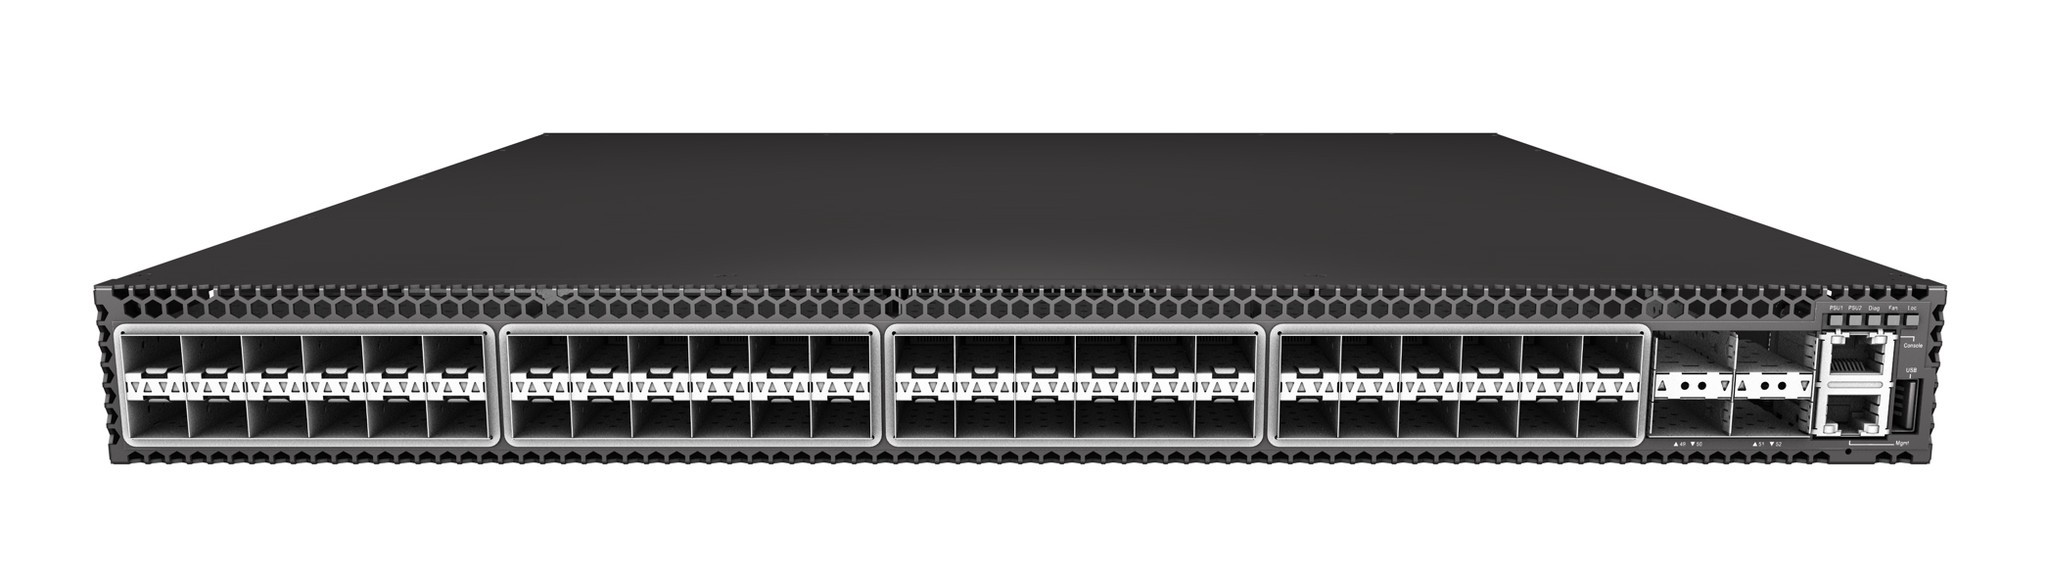 Edge-Core AS5610-52X 10/40G BM switch preloaded with ONIE front